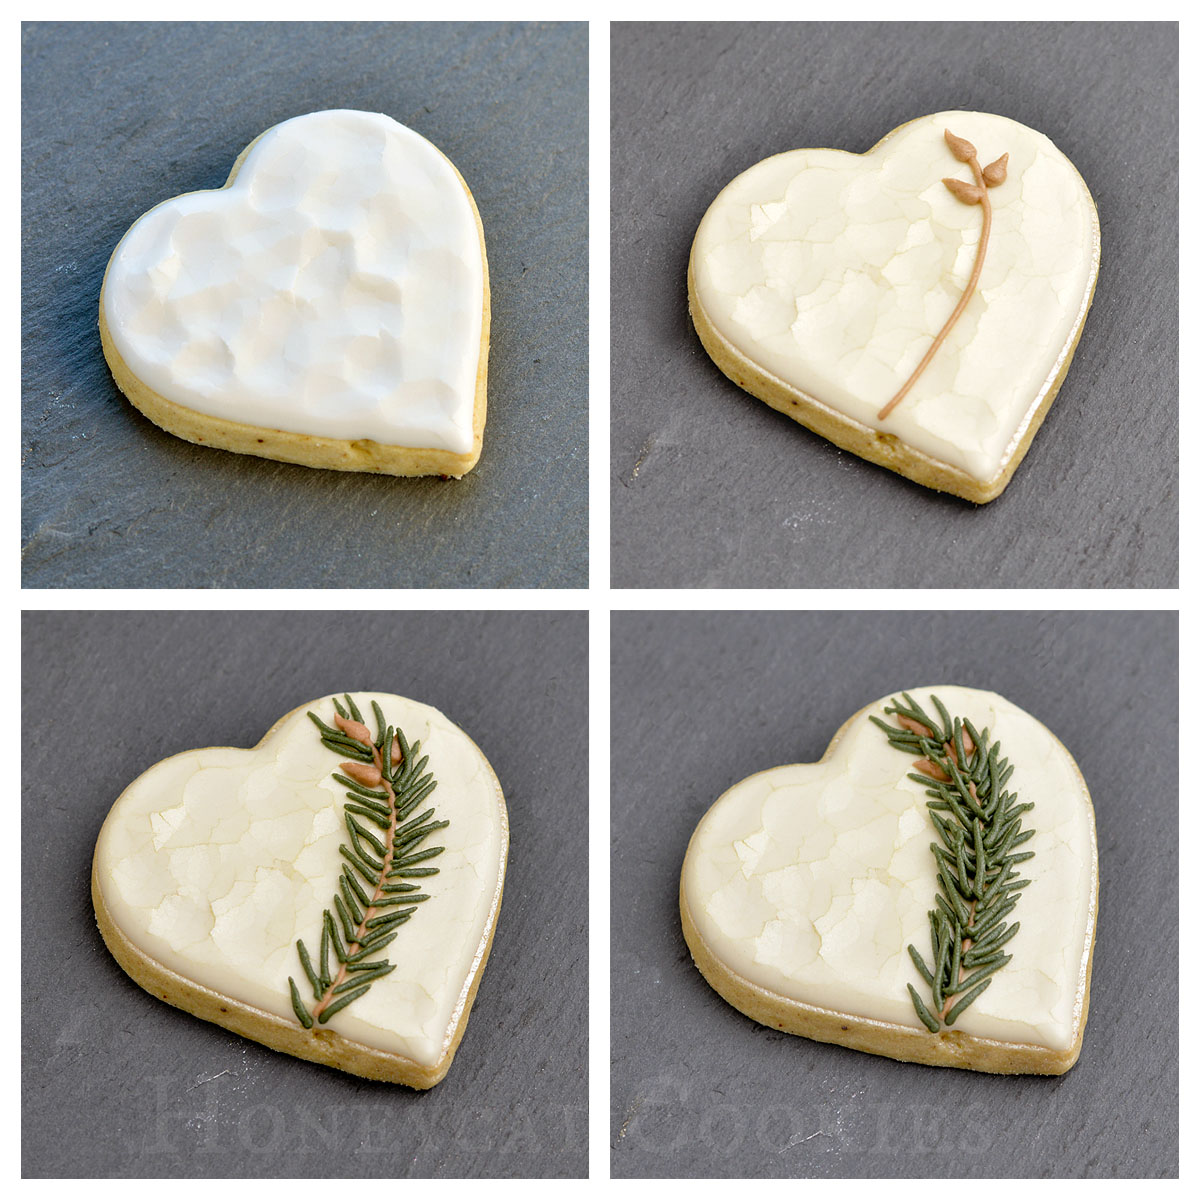 Adding royal icing spruce sprig to Valentine's Day cookie, photo by Honeycat Cookies